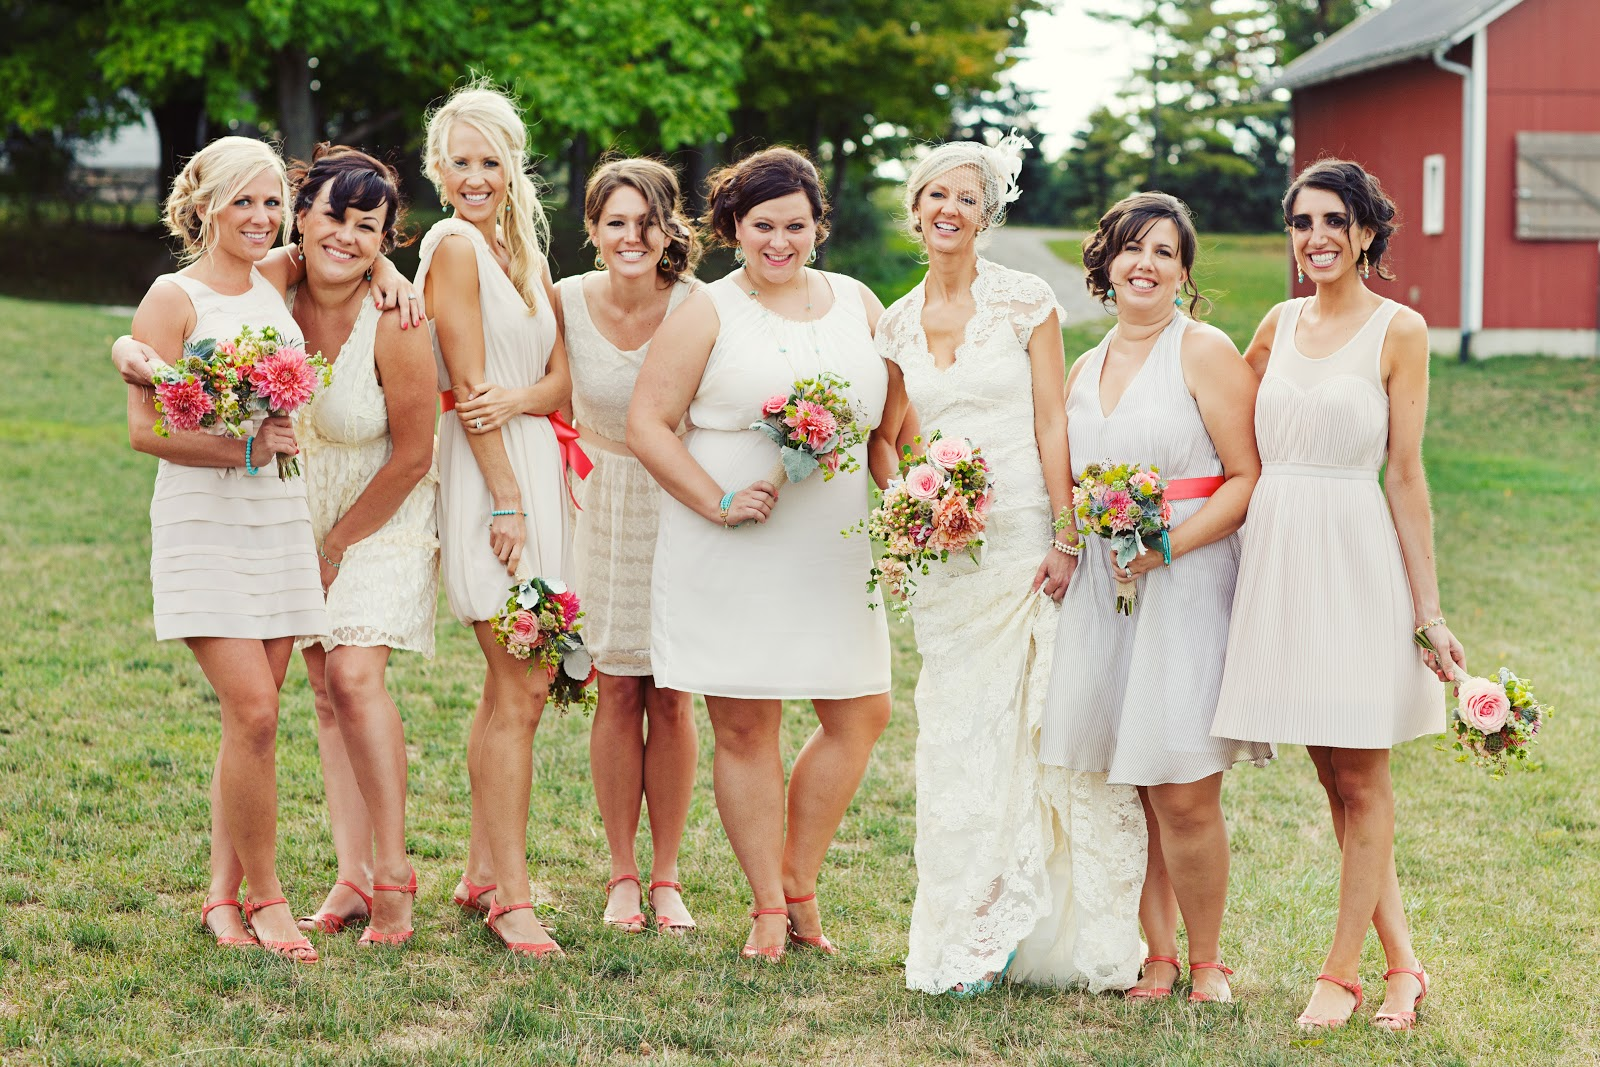 Real Bridesmaids In Beige Bridesmaid Dresses: Mismatched Bridesmaid Dresses